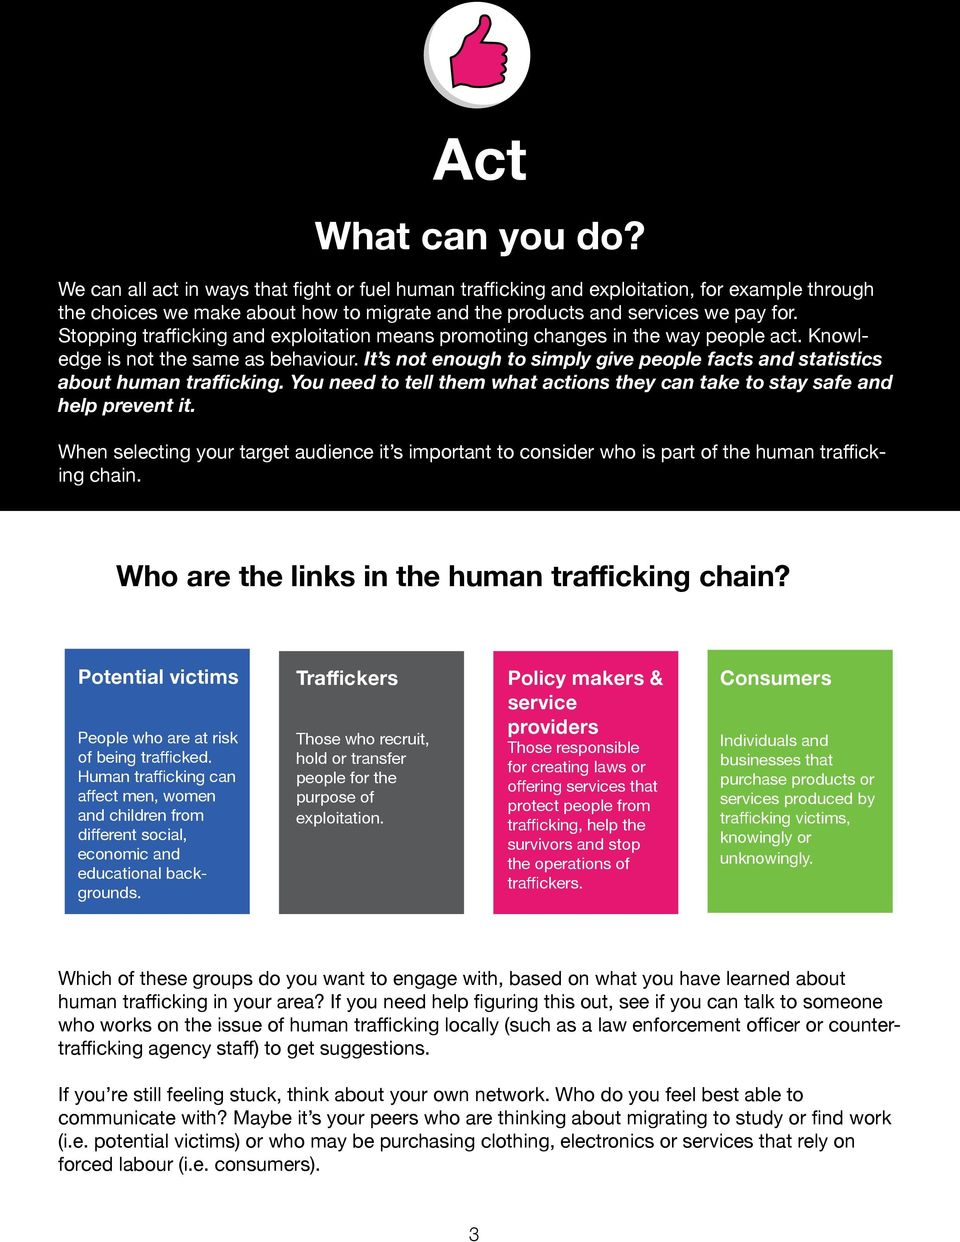 Stopping trafficking and exploitation means promoting changes in the way people act. Knowledge is not the same as behaviour.